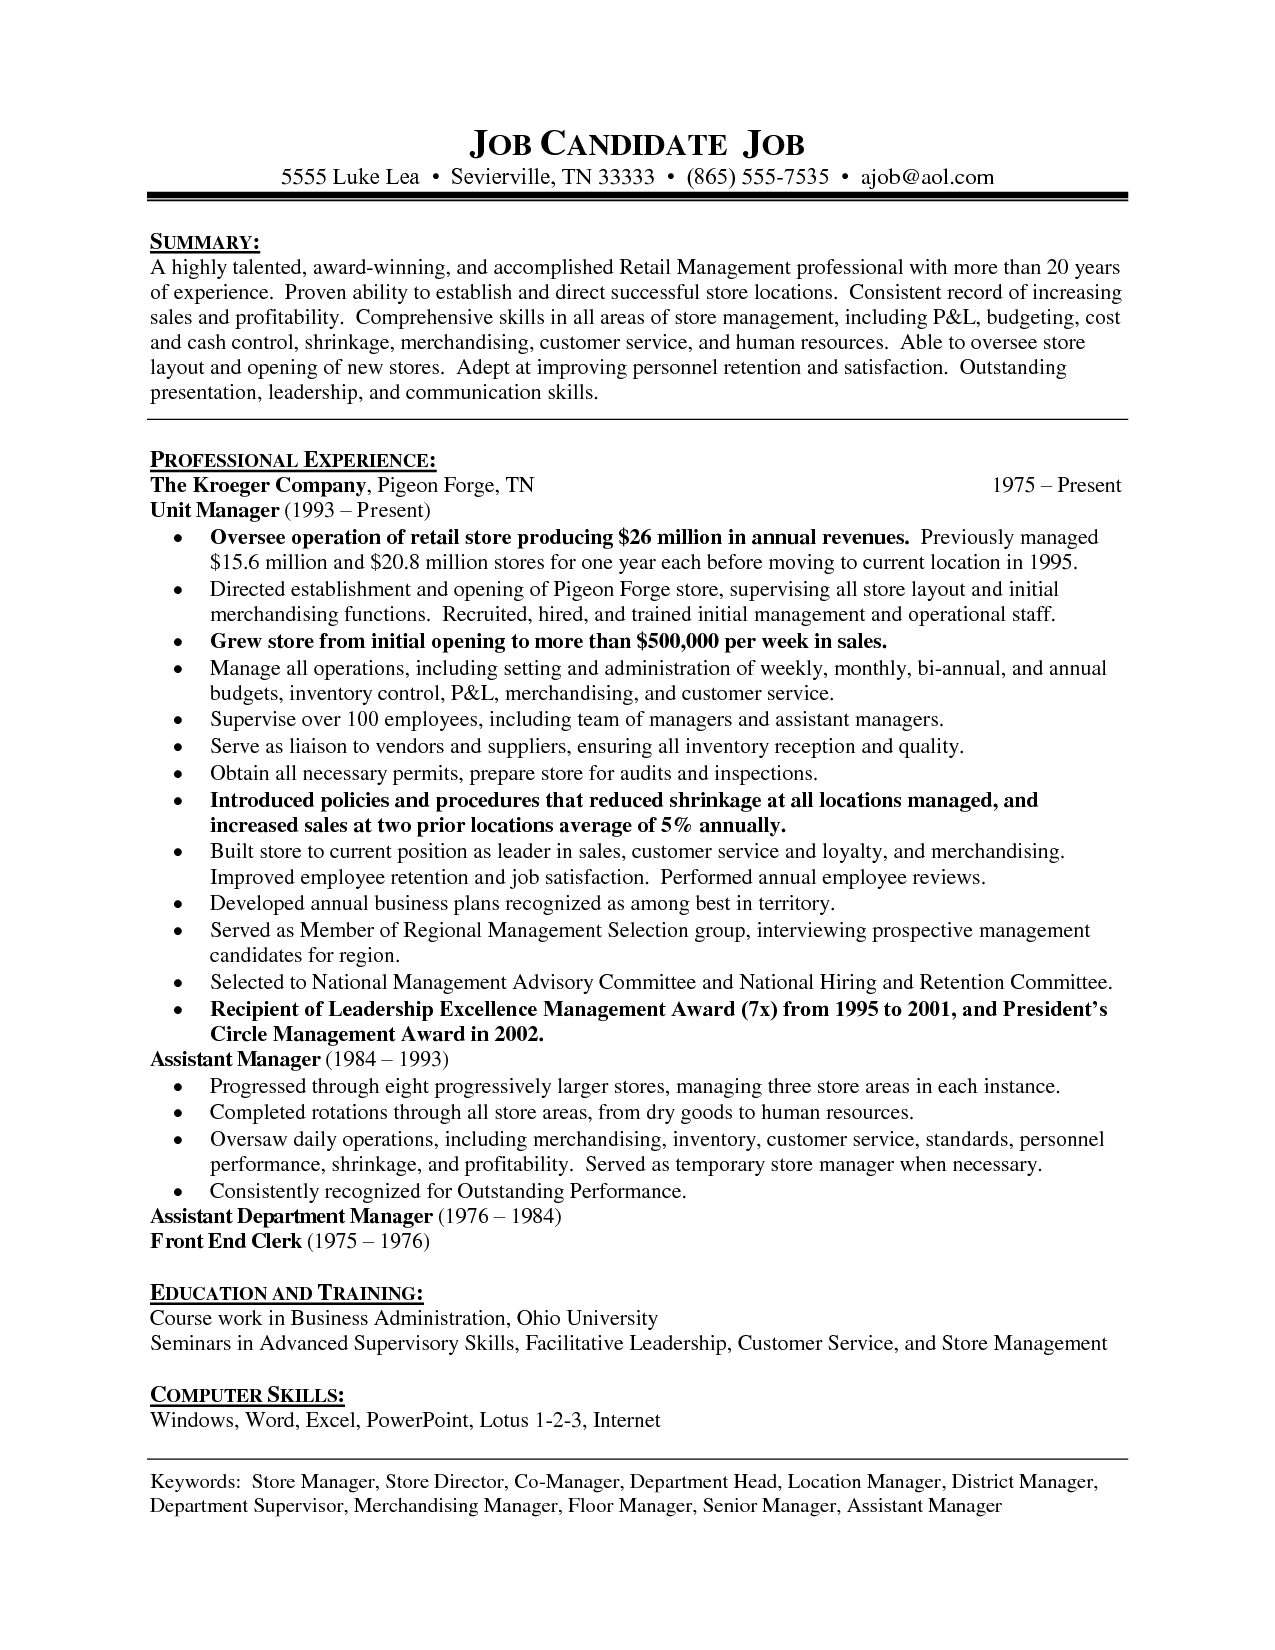 Assistant Manager Resume Format Alluring Retail Department Store Manager Resume  Vision Specialist  Good .